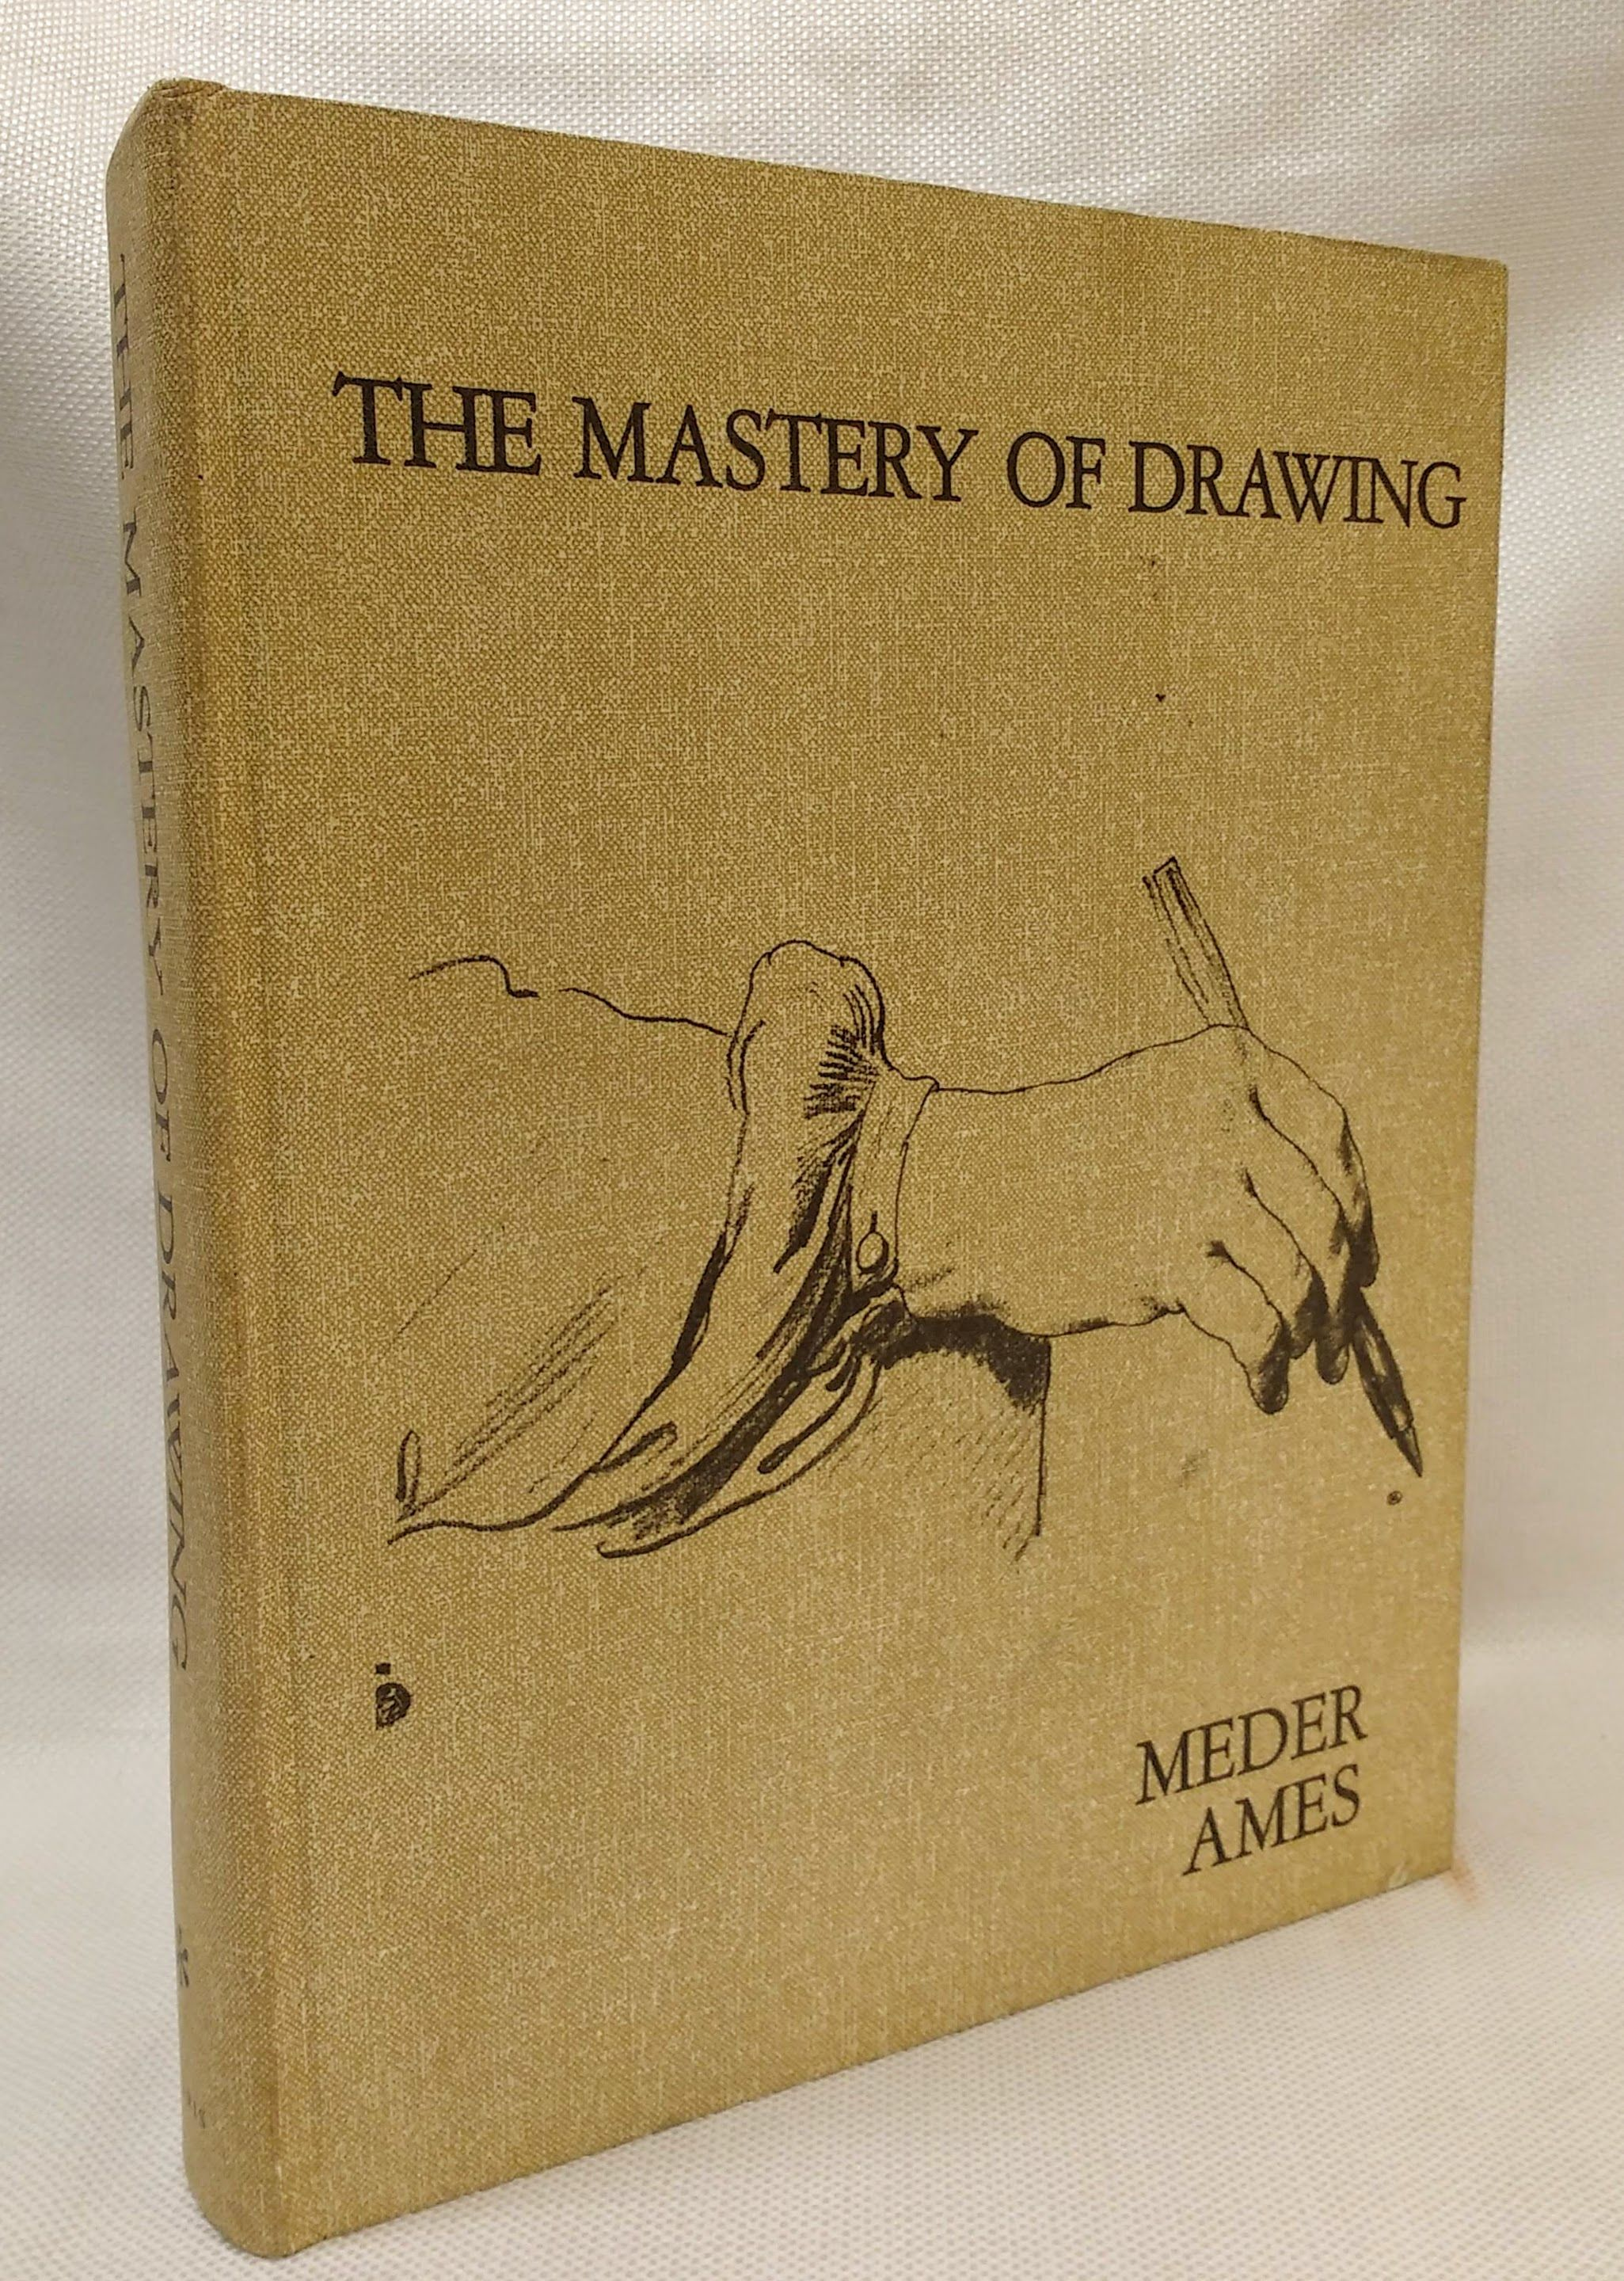 The Mastery of Drawing [Volume 1 Only], Ames, Meder; Ames, Winslow [Preface];